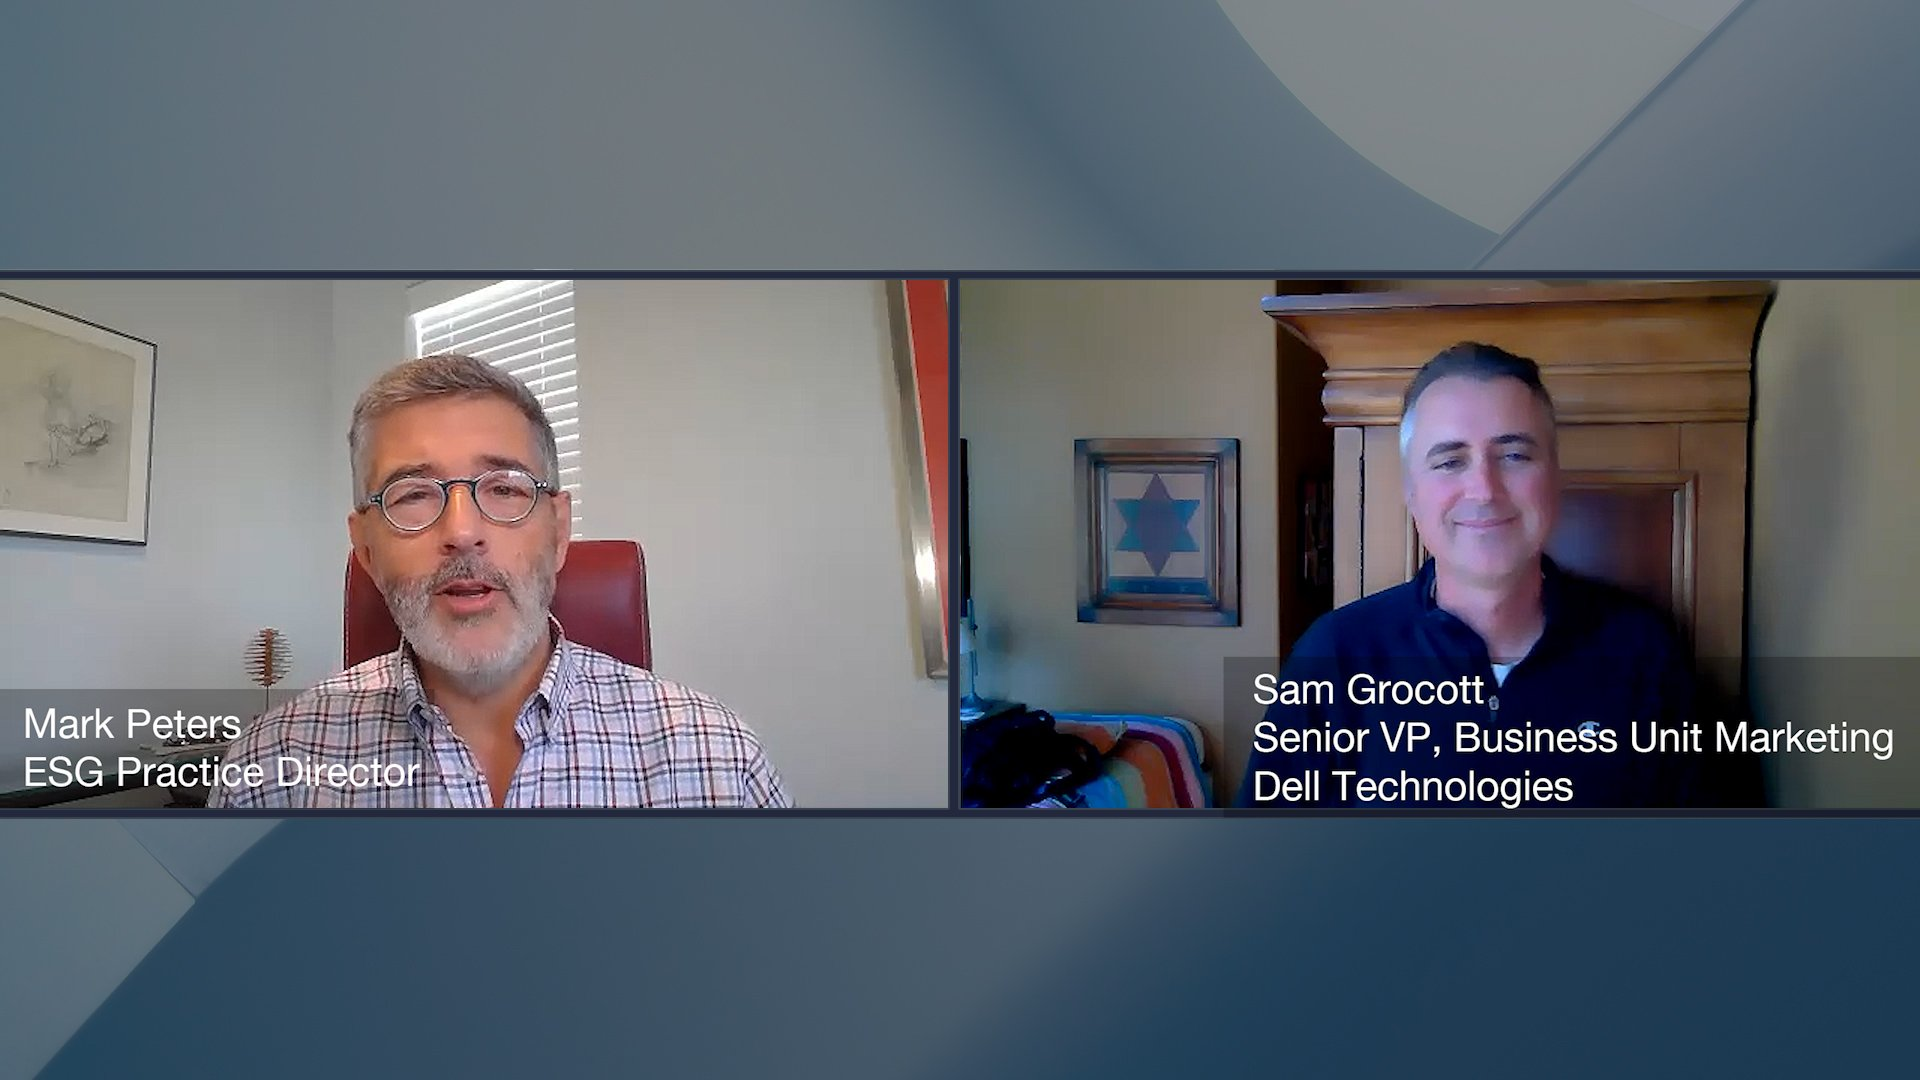 Marketing in Challenging Times - In Conversation with Sam Grocott of Dell (Video)